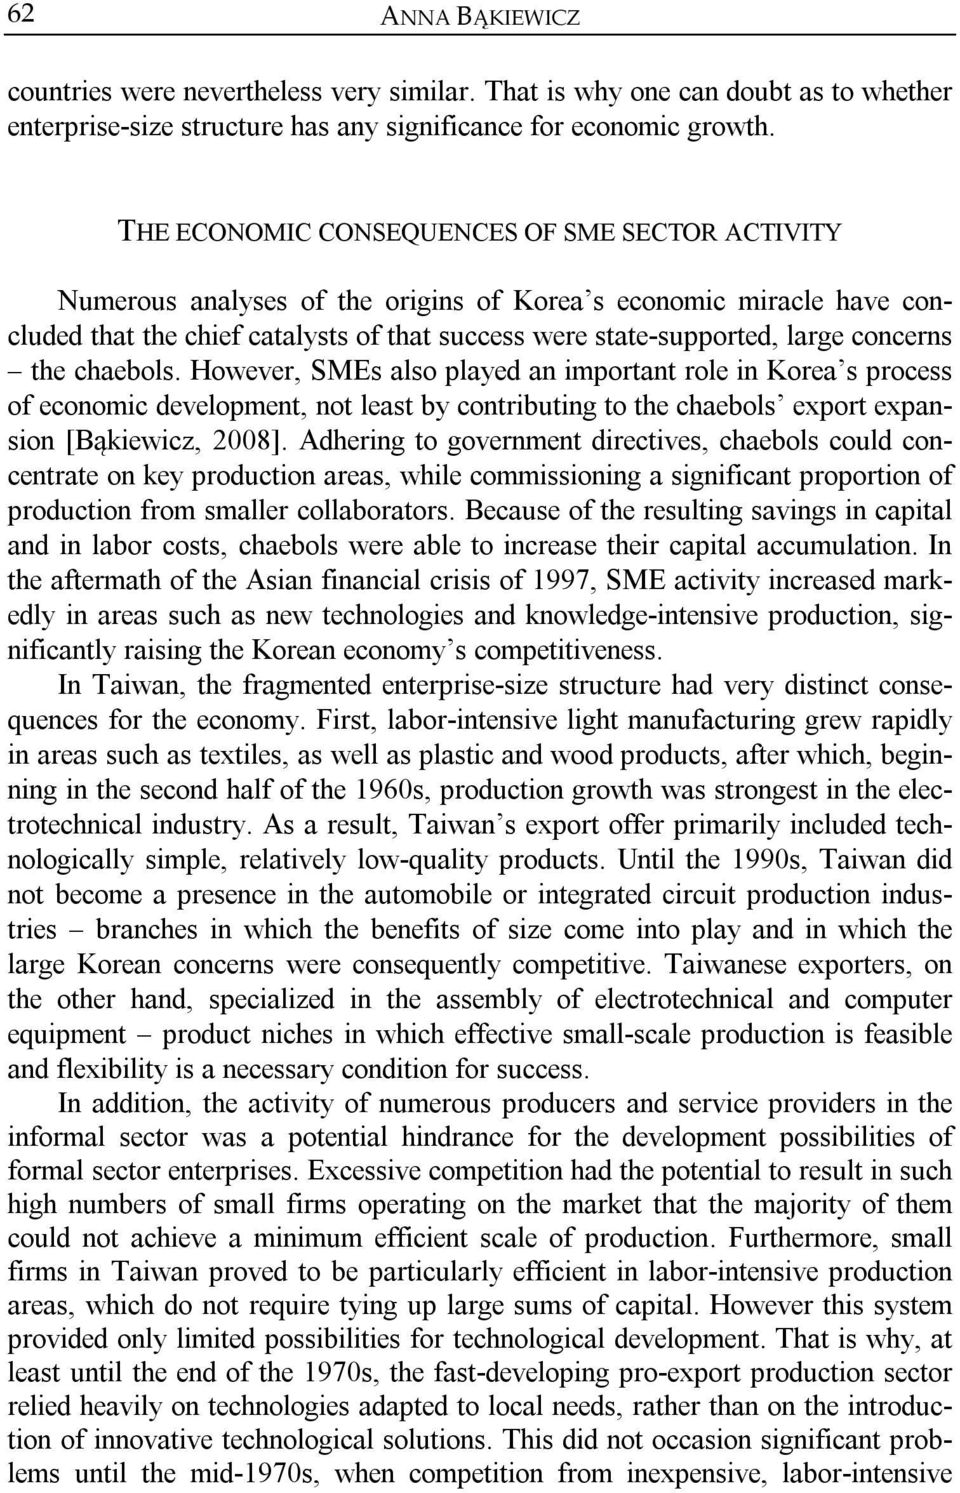 concerns the chaebols. However, SMEs also played an important role in Korea s process of economic development, not least by contributing to the chaebols export expansion [Bąkiewicz, 2008].